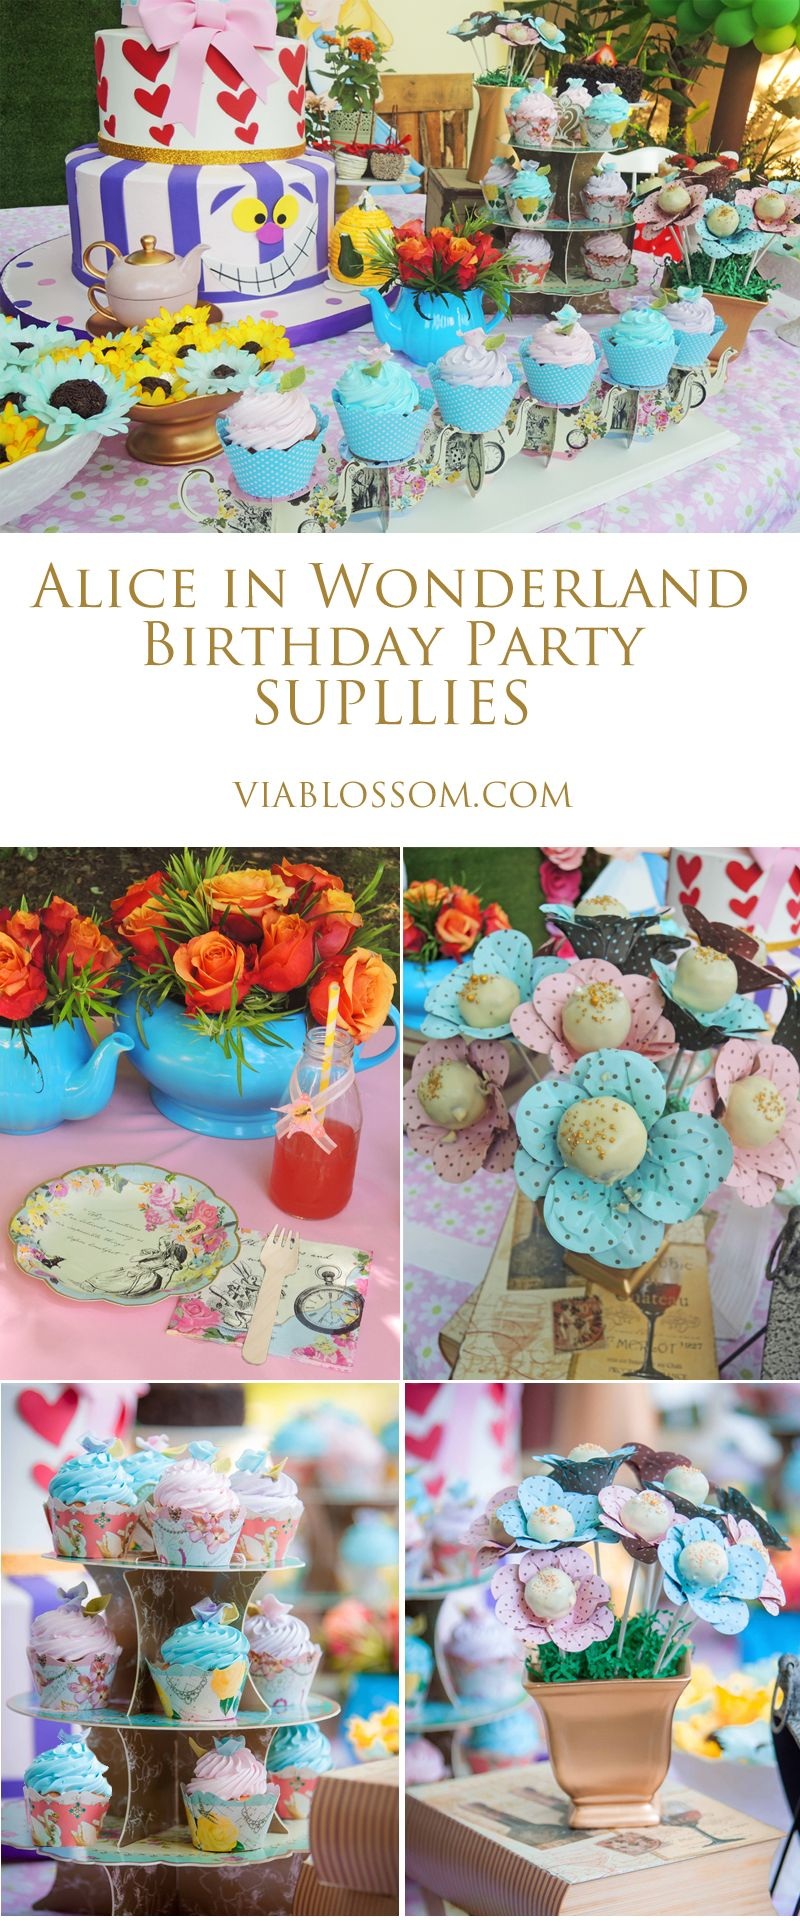 Alice in Wonderland Party Ideas and Party